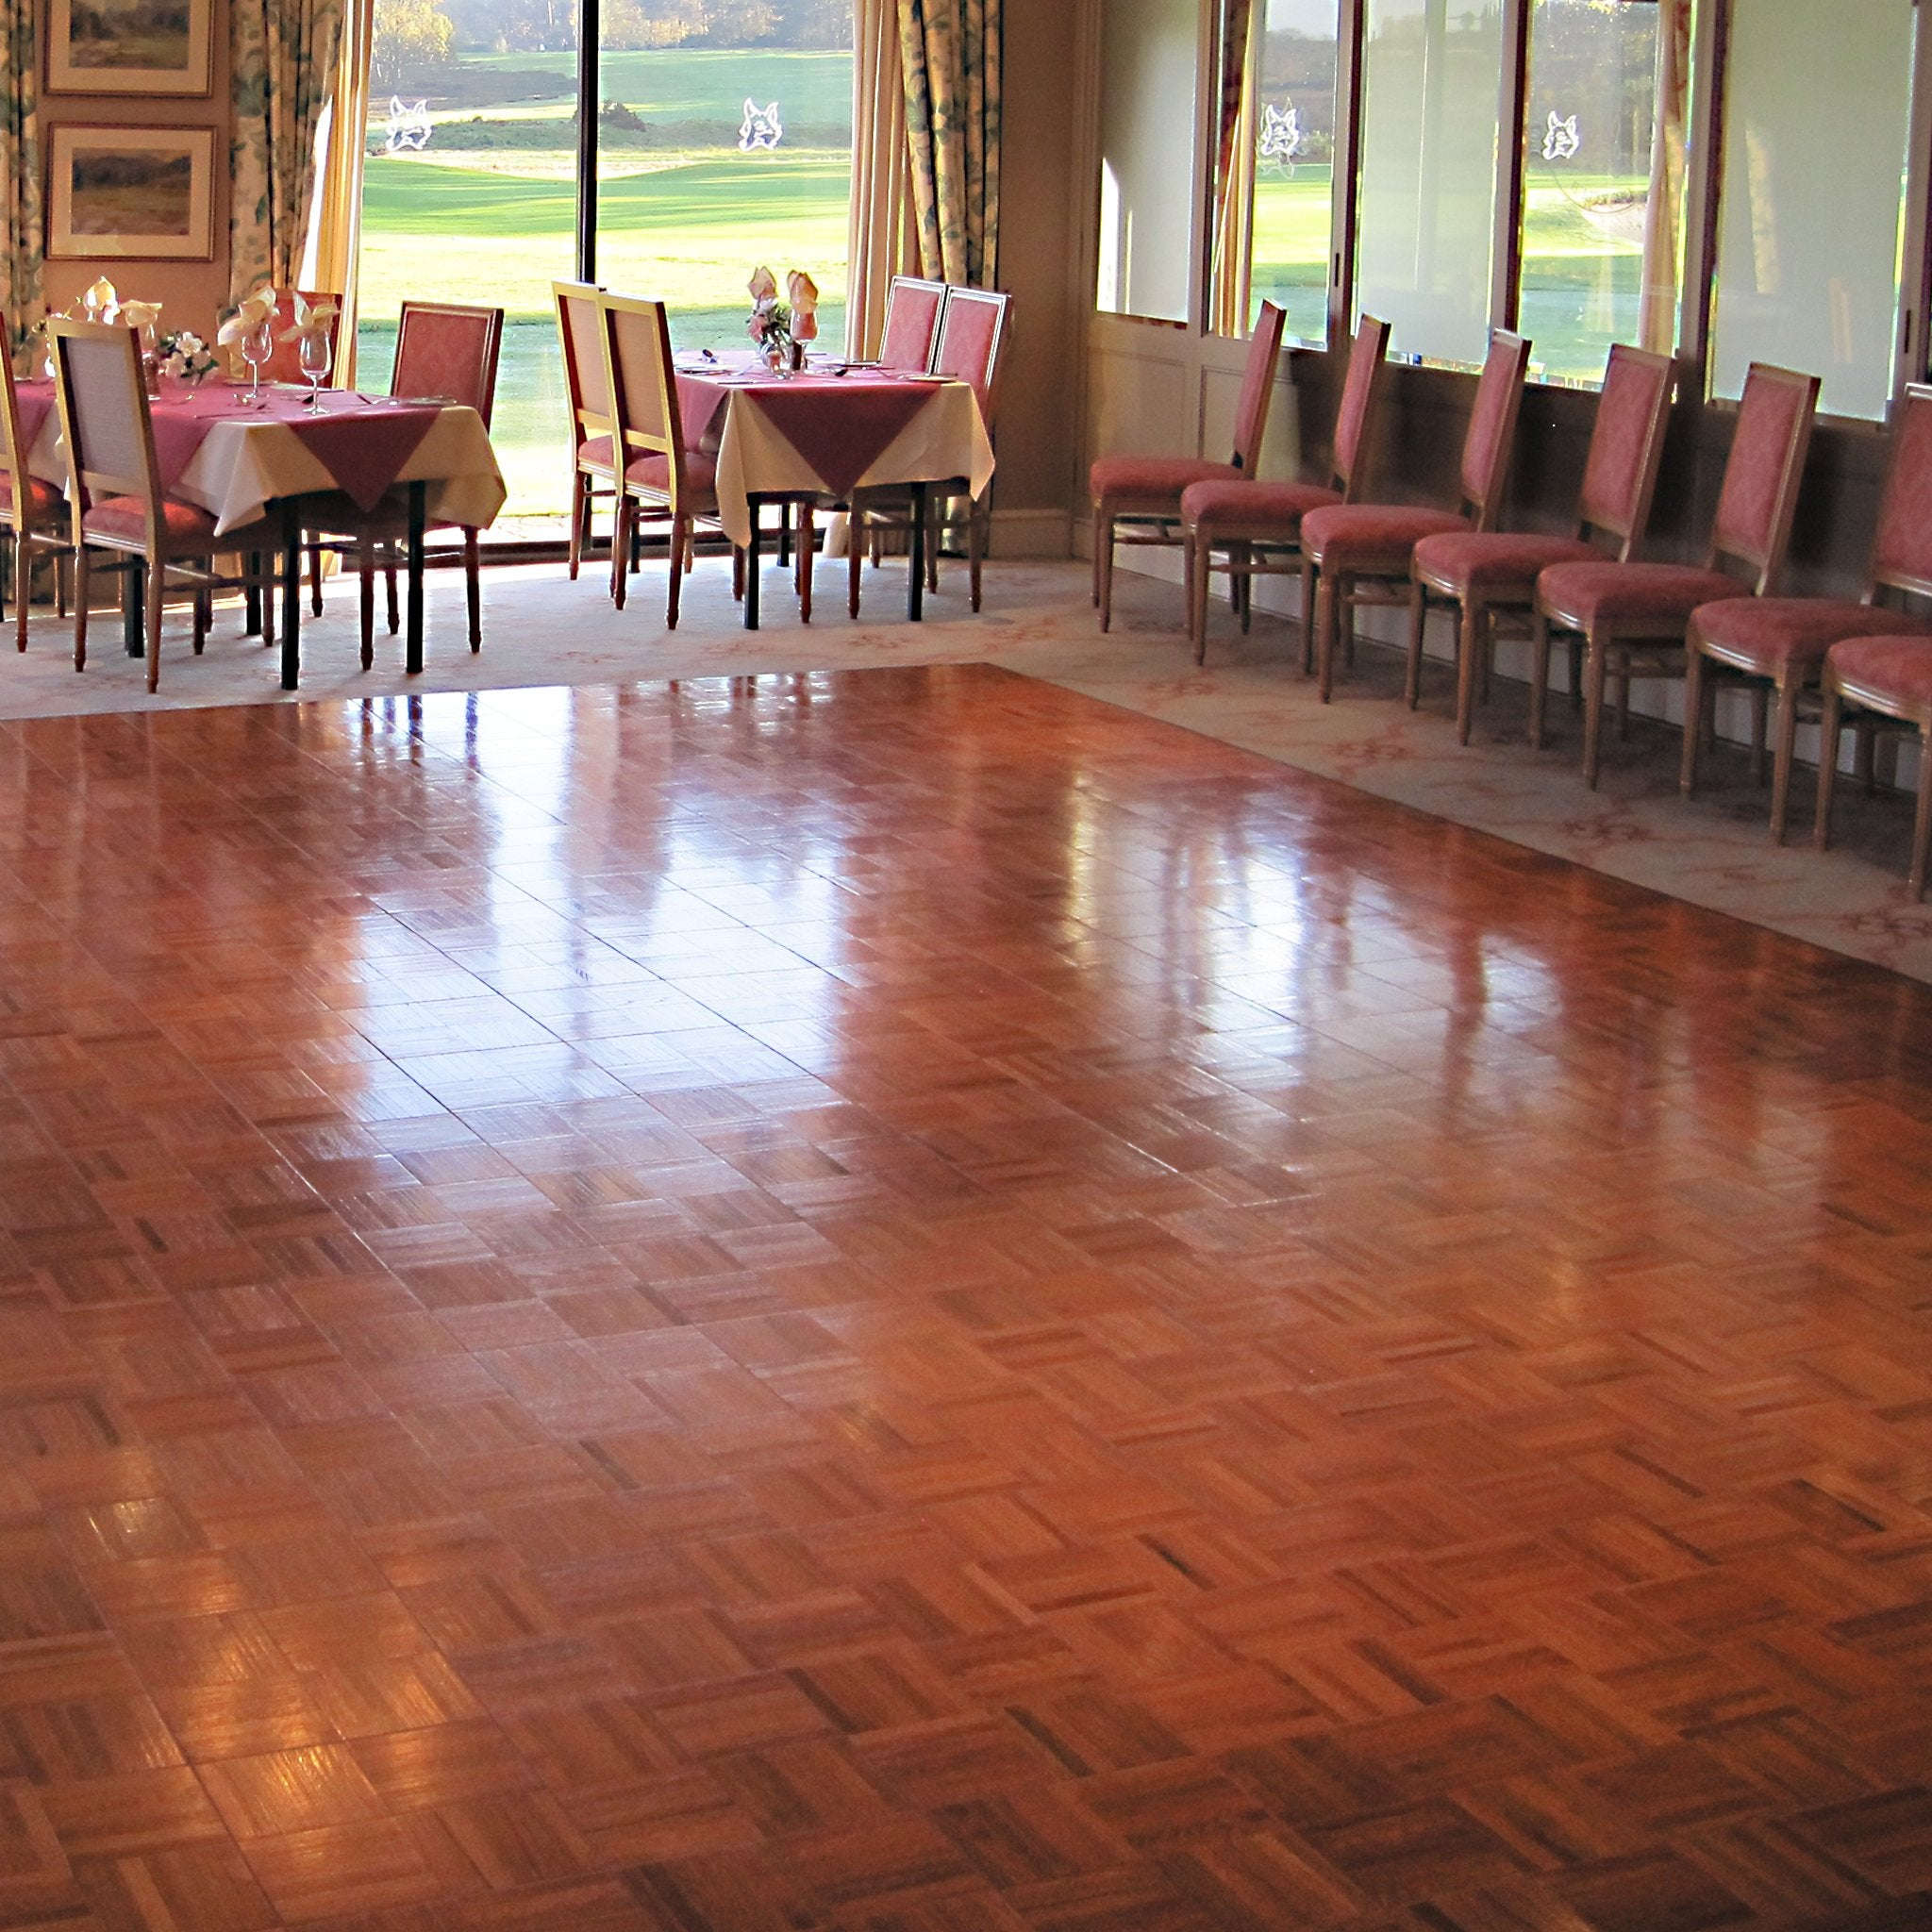 Signature DanceDeck Flooring - Easy to Transport and Install